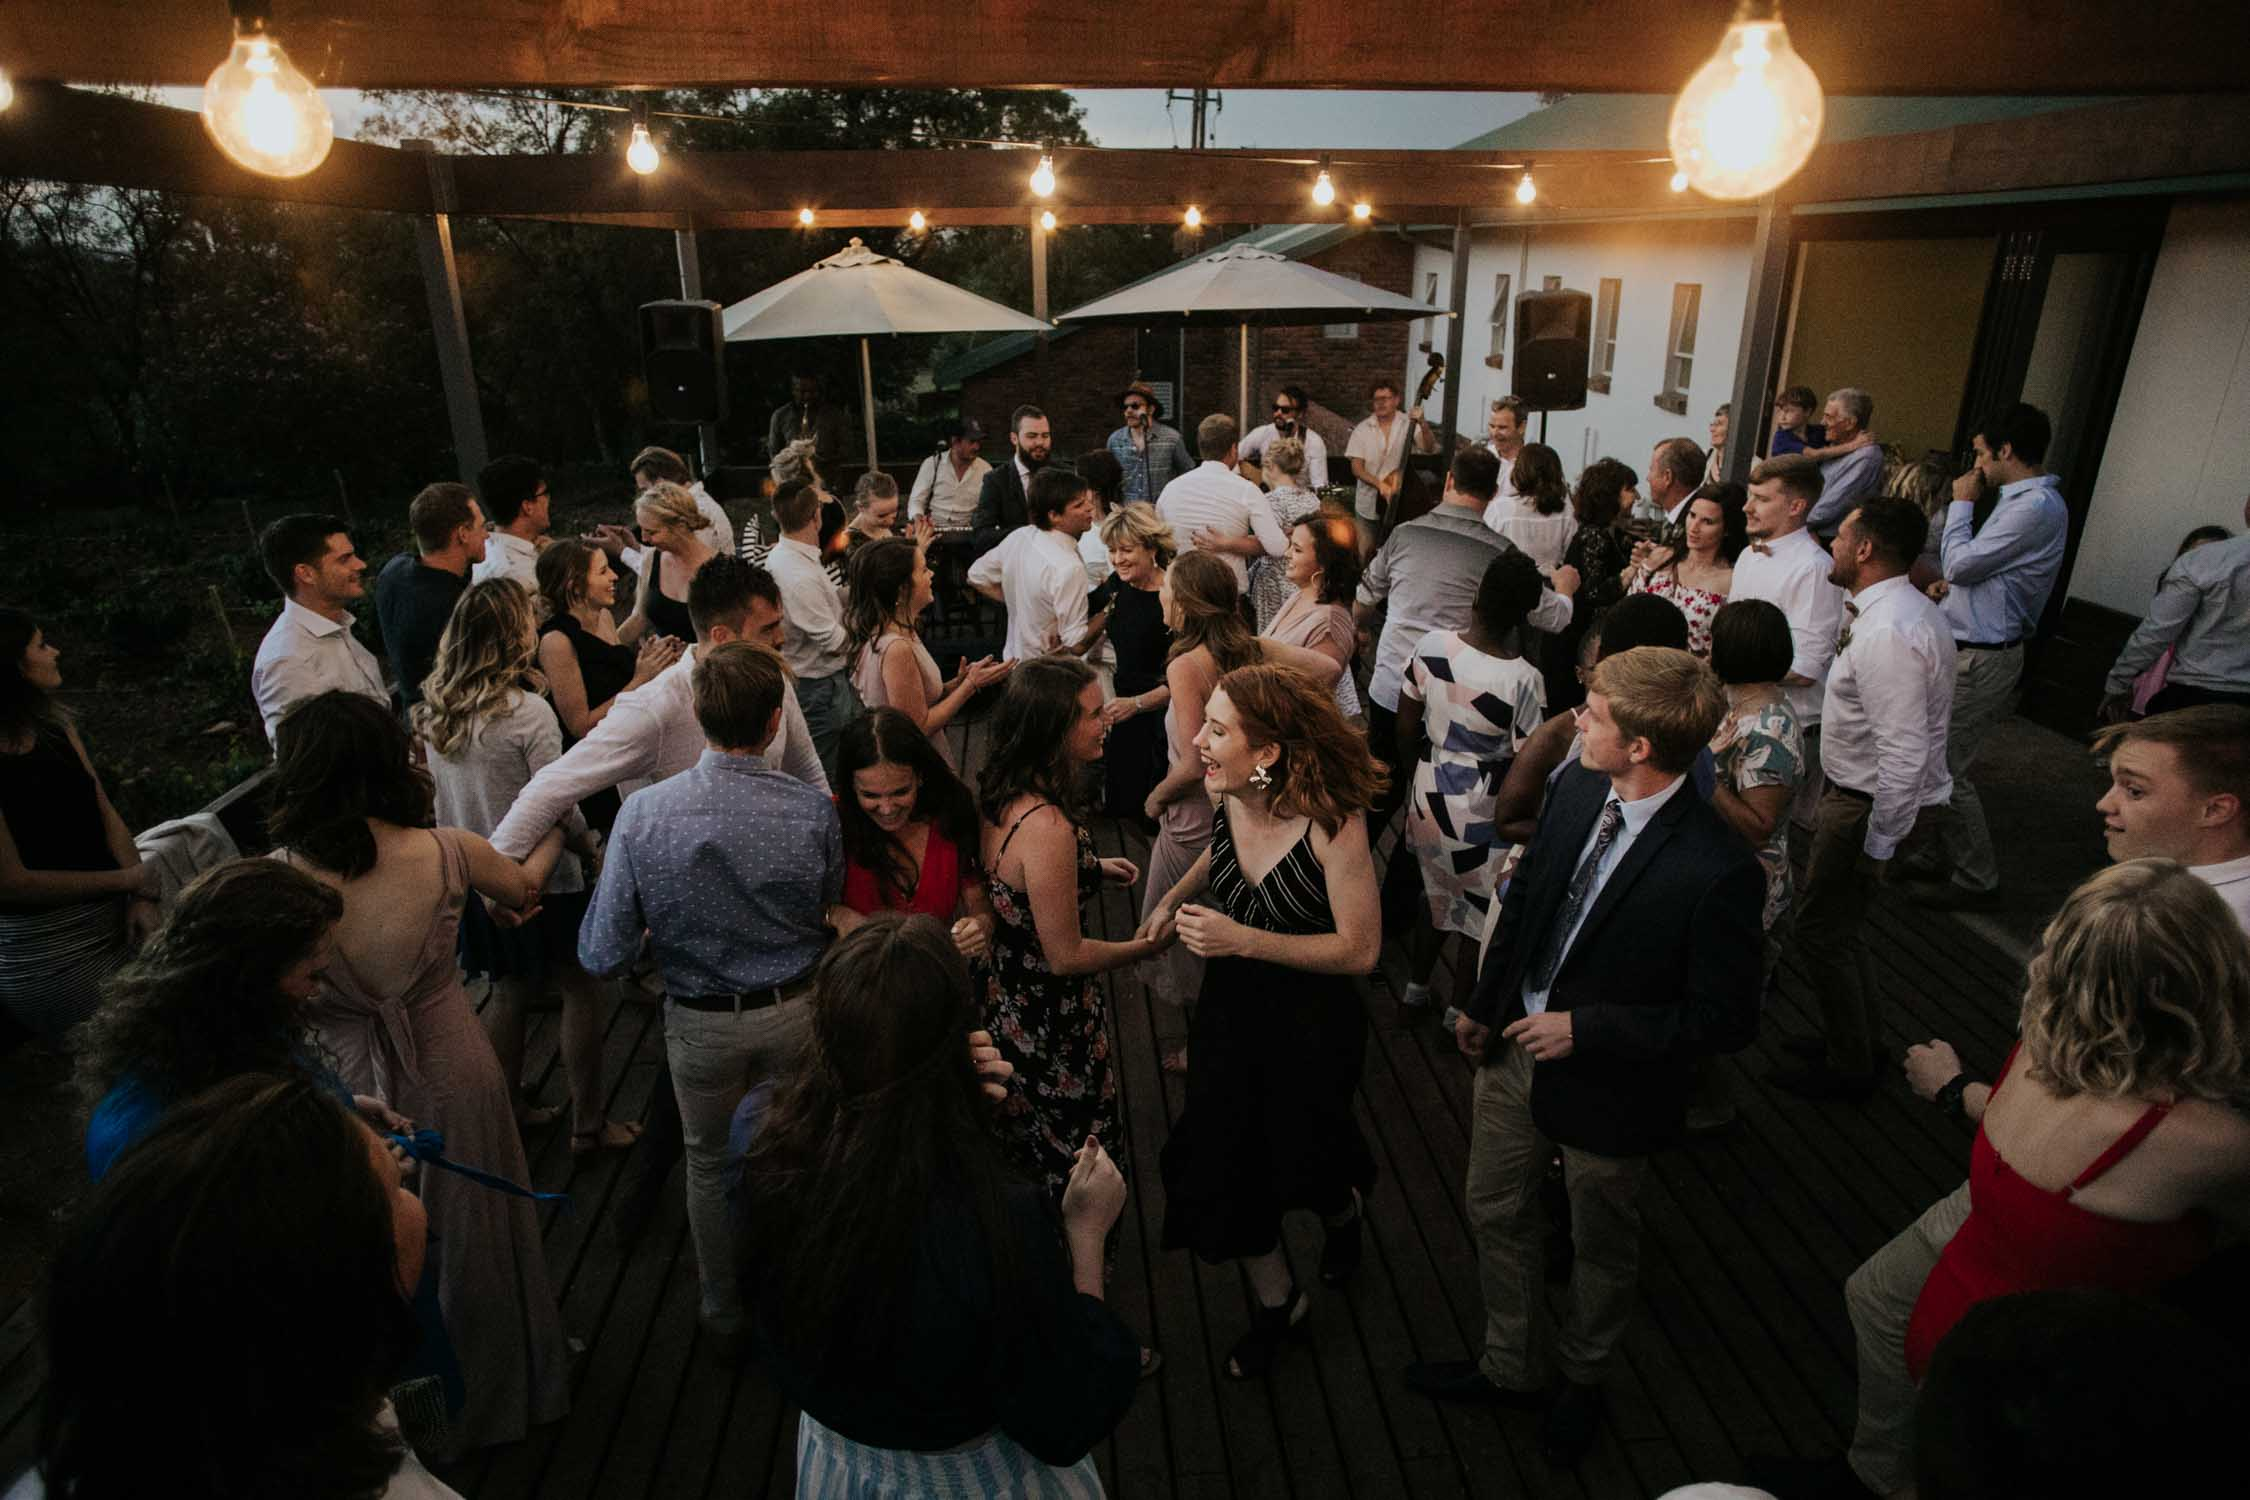 Wedding guests go wild on the dance floor to live band